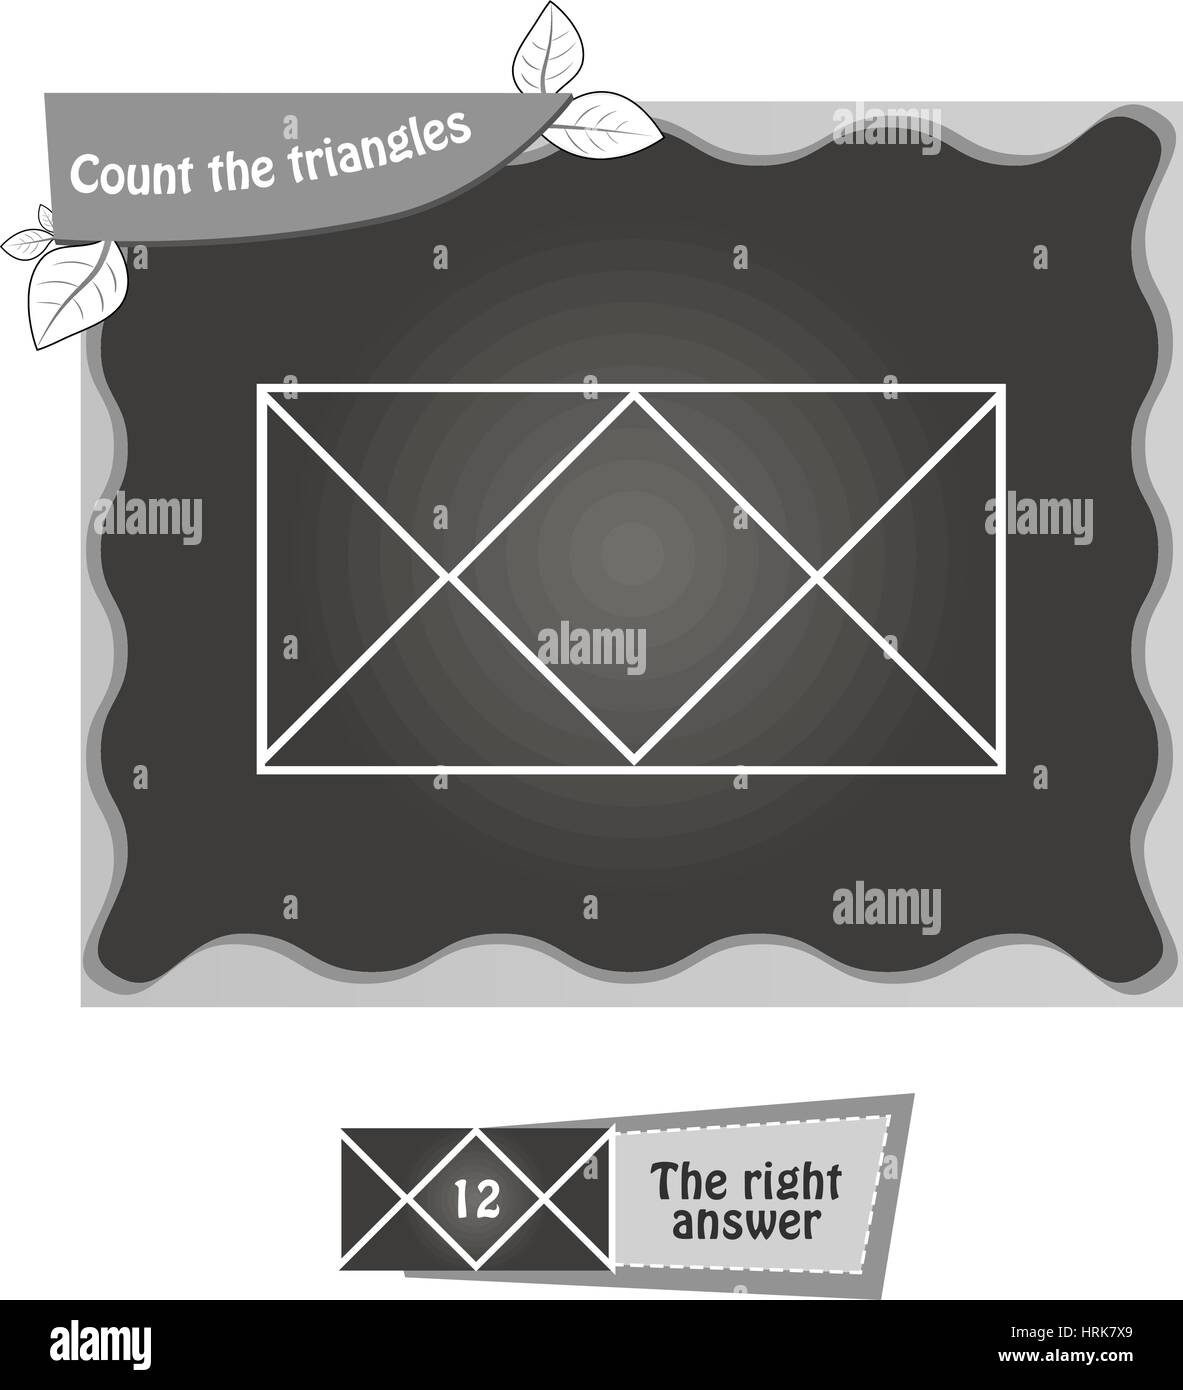 visual game for children. Task: count the triangles. black and white vector illustration - Stock Vector